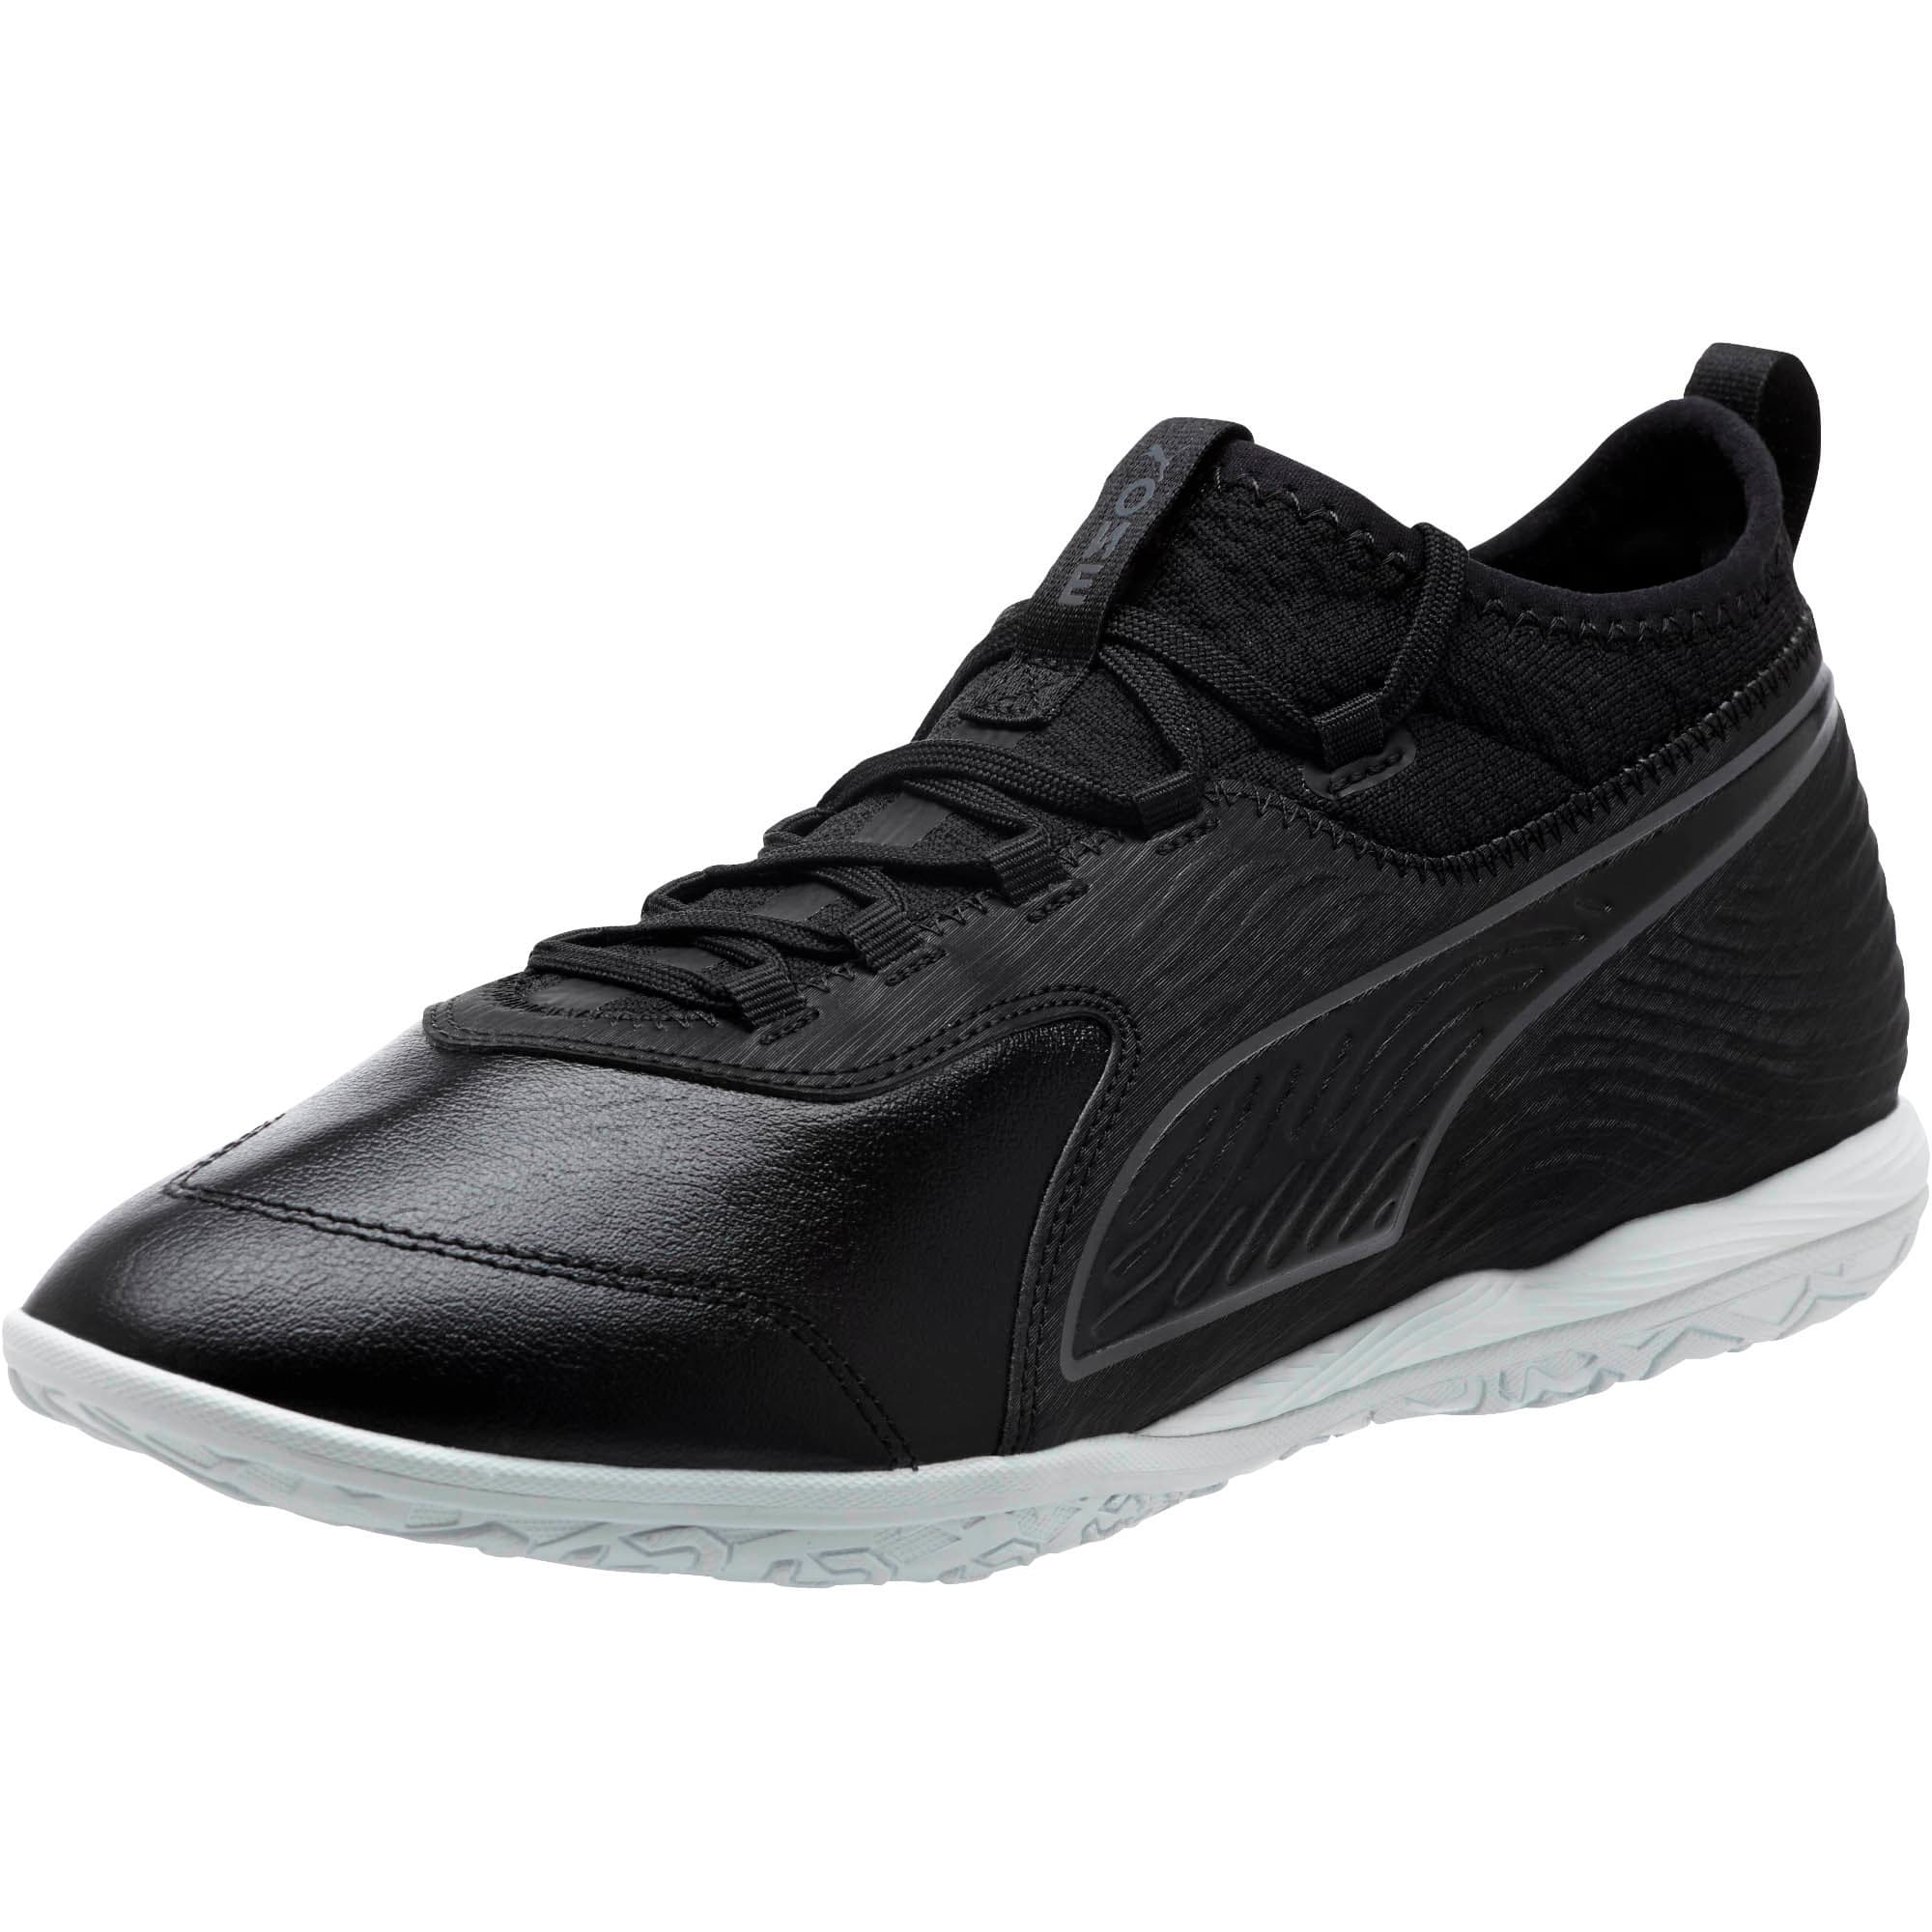 Thumbnail 1 of PUMA ONE 19.3 IT Men's Soccer Shoes, Puma Black-Puma Black-White, medium